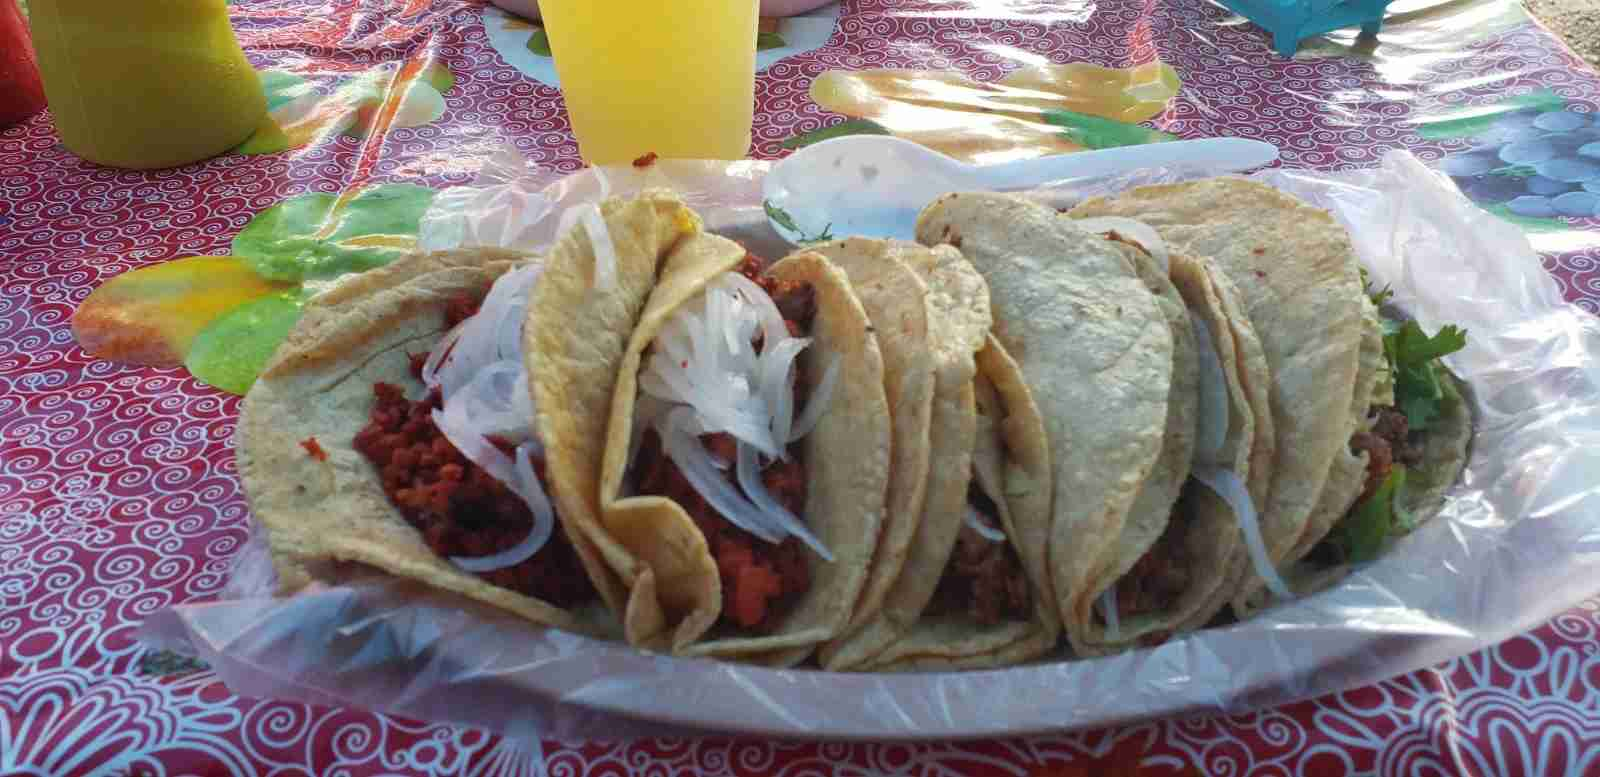 The author regularly defaulted to street tacos for serving her family an inexpensive meal (Terry-Ward.com)